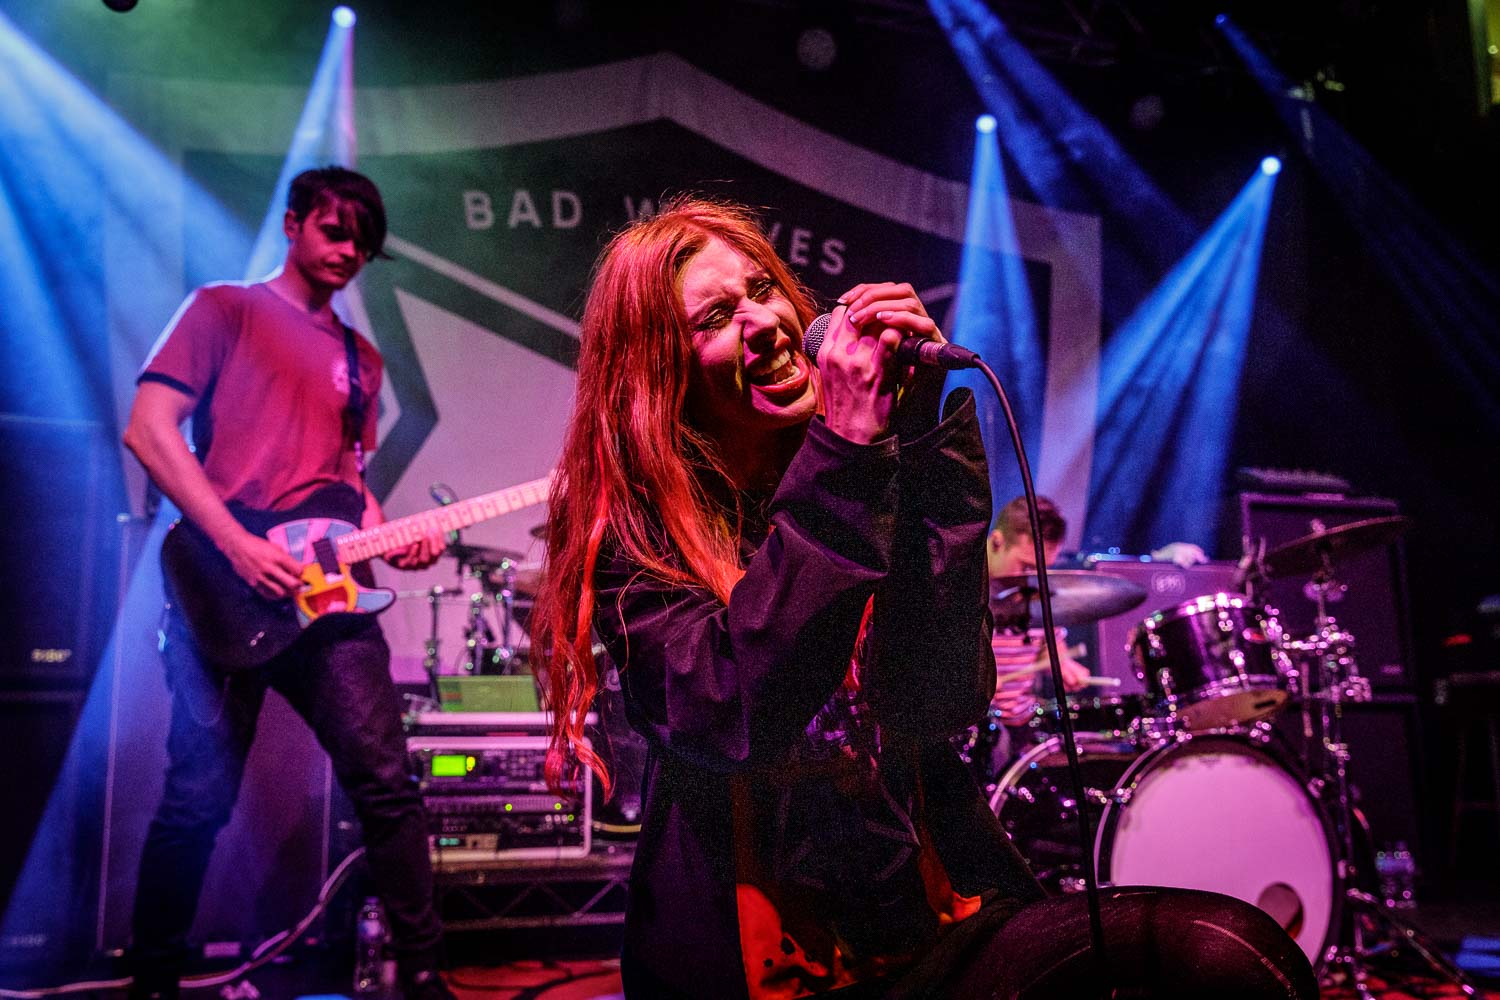 RedHook at the Manchester Academy 2 on June 13th 2019